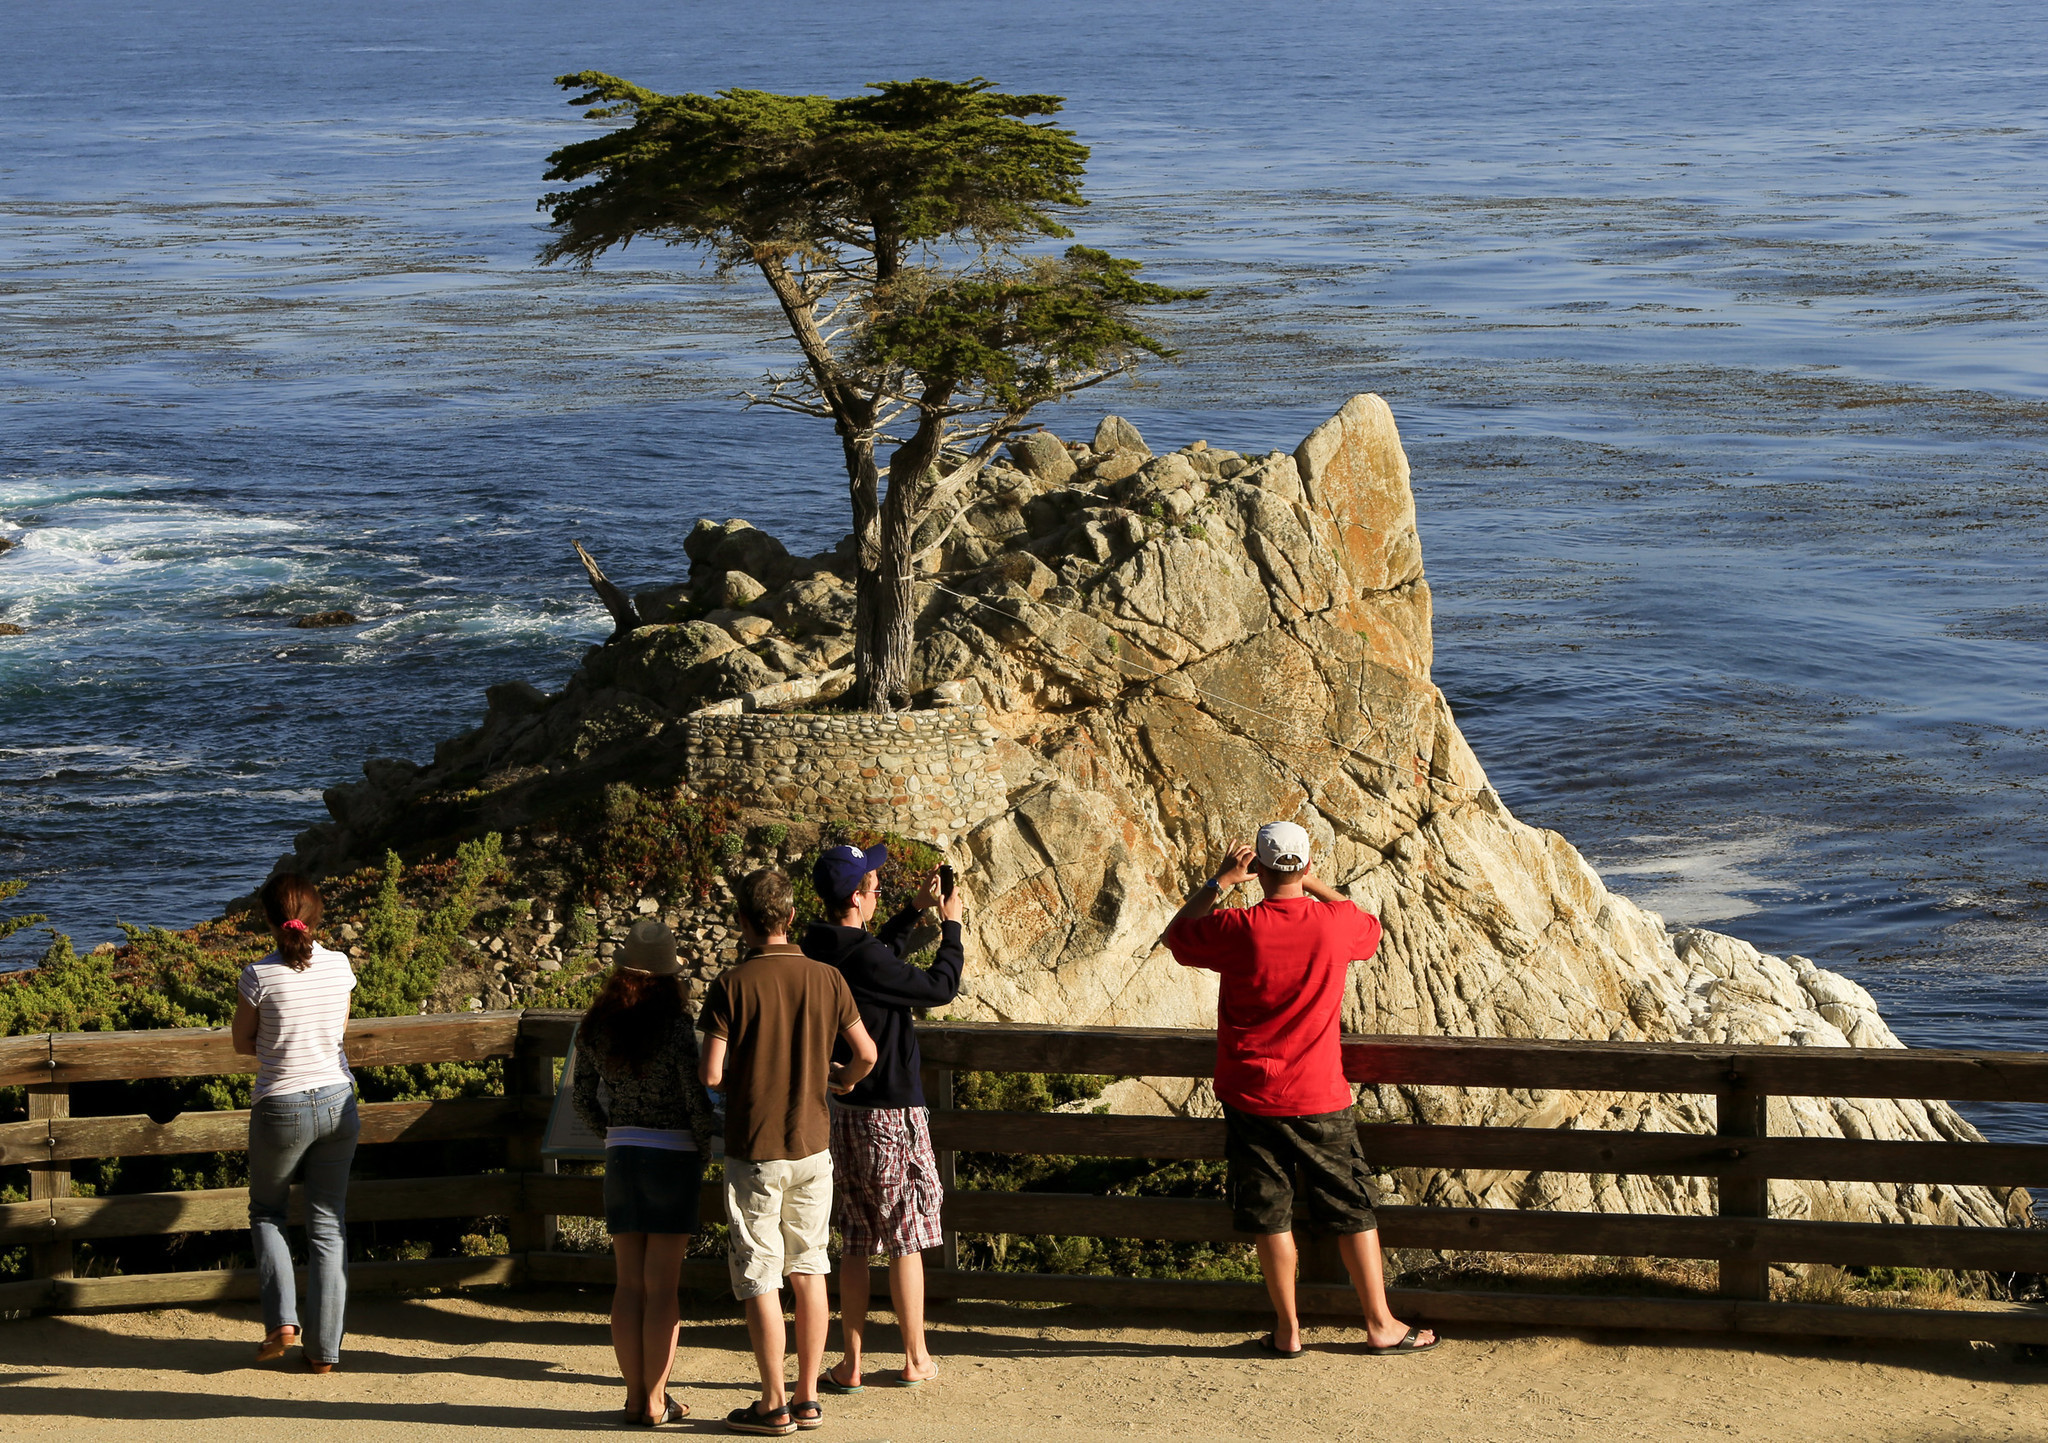 The Lone Cypress   This lone cypress, standing on a rock